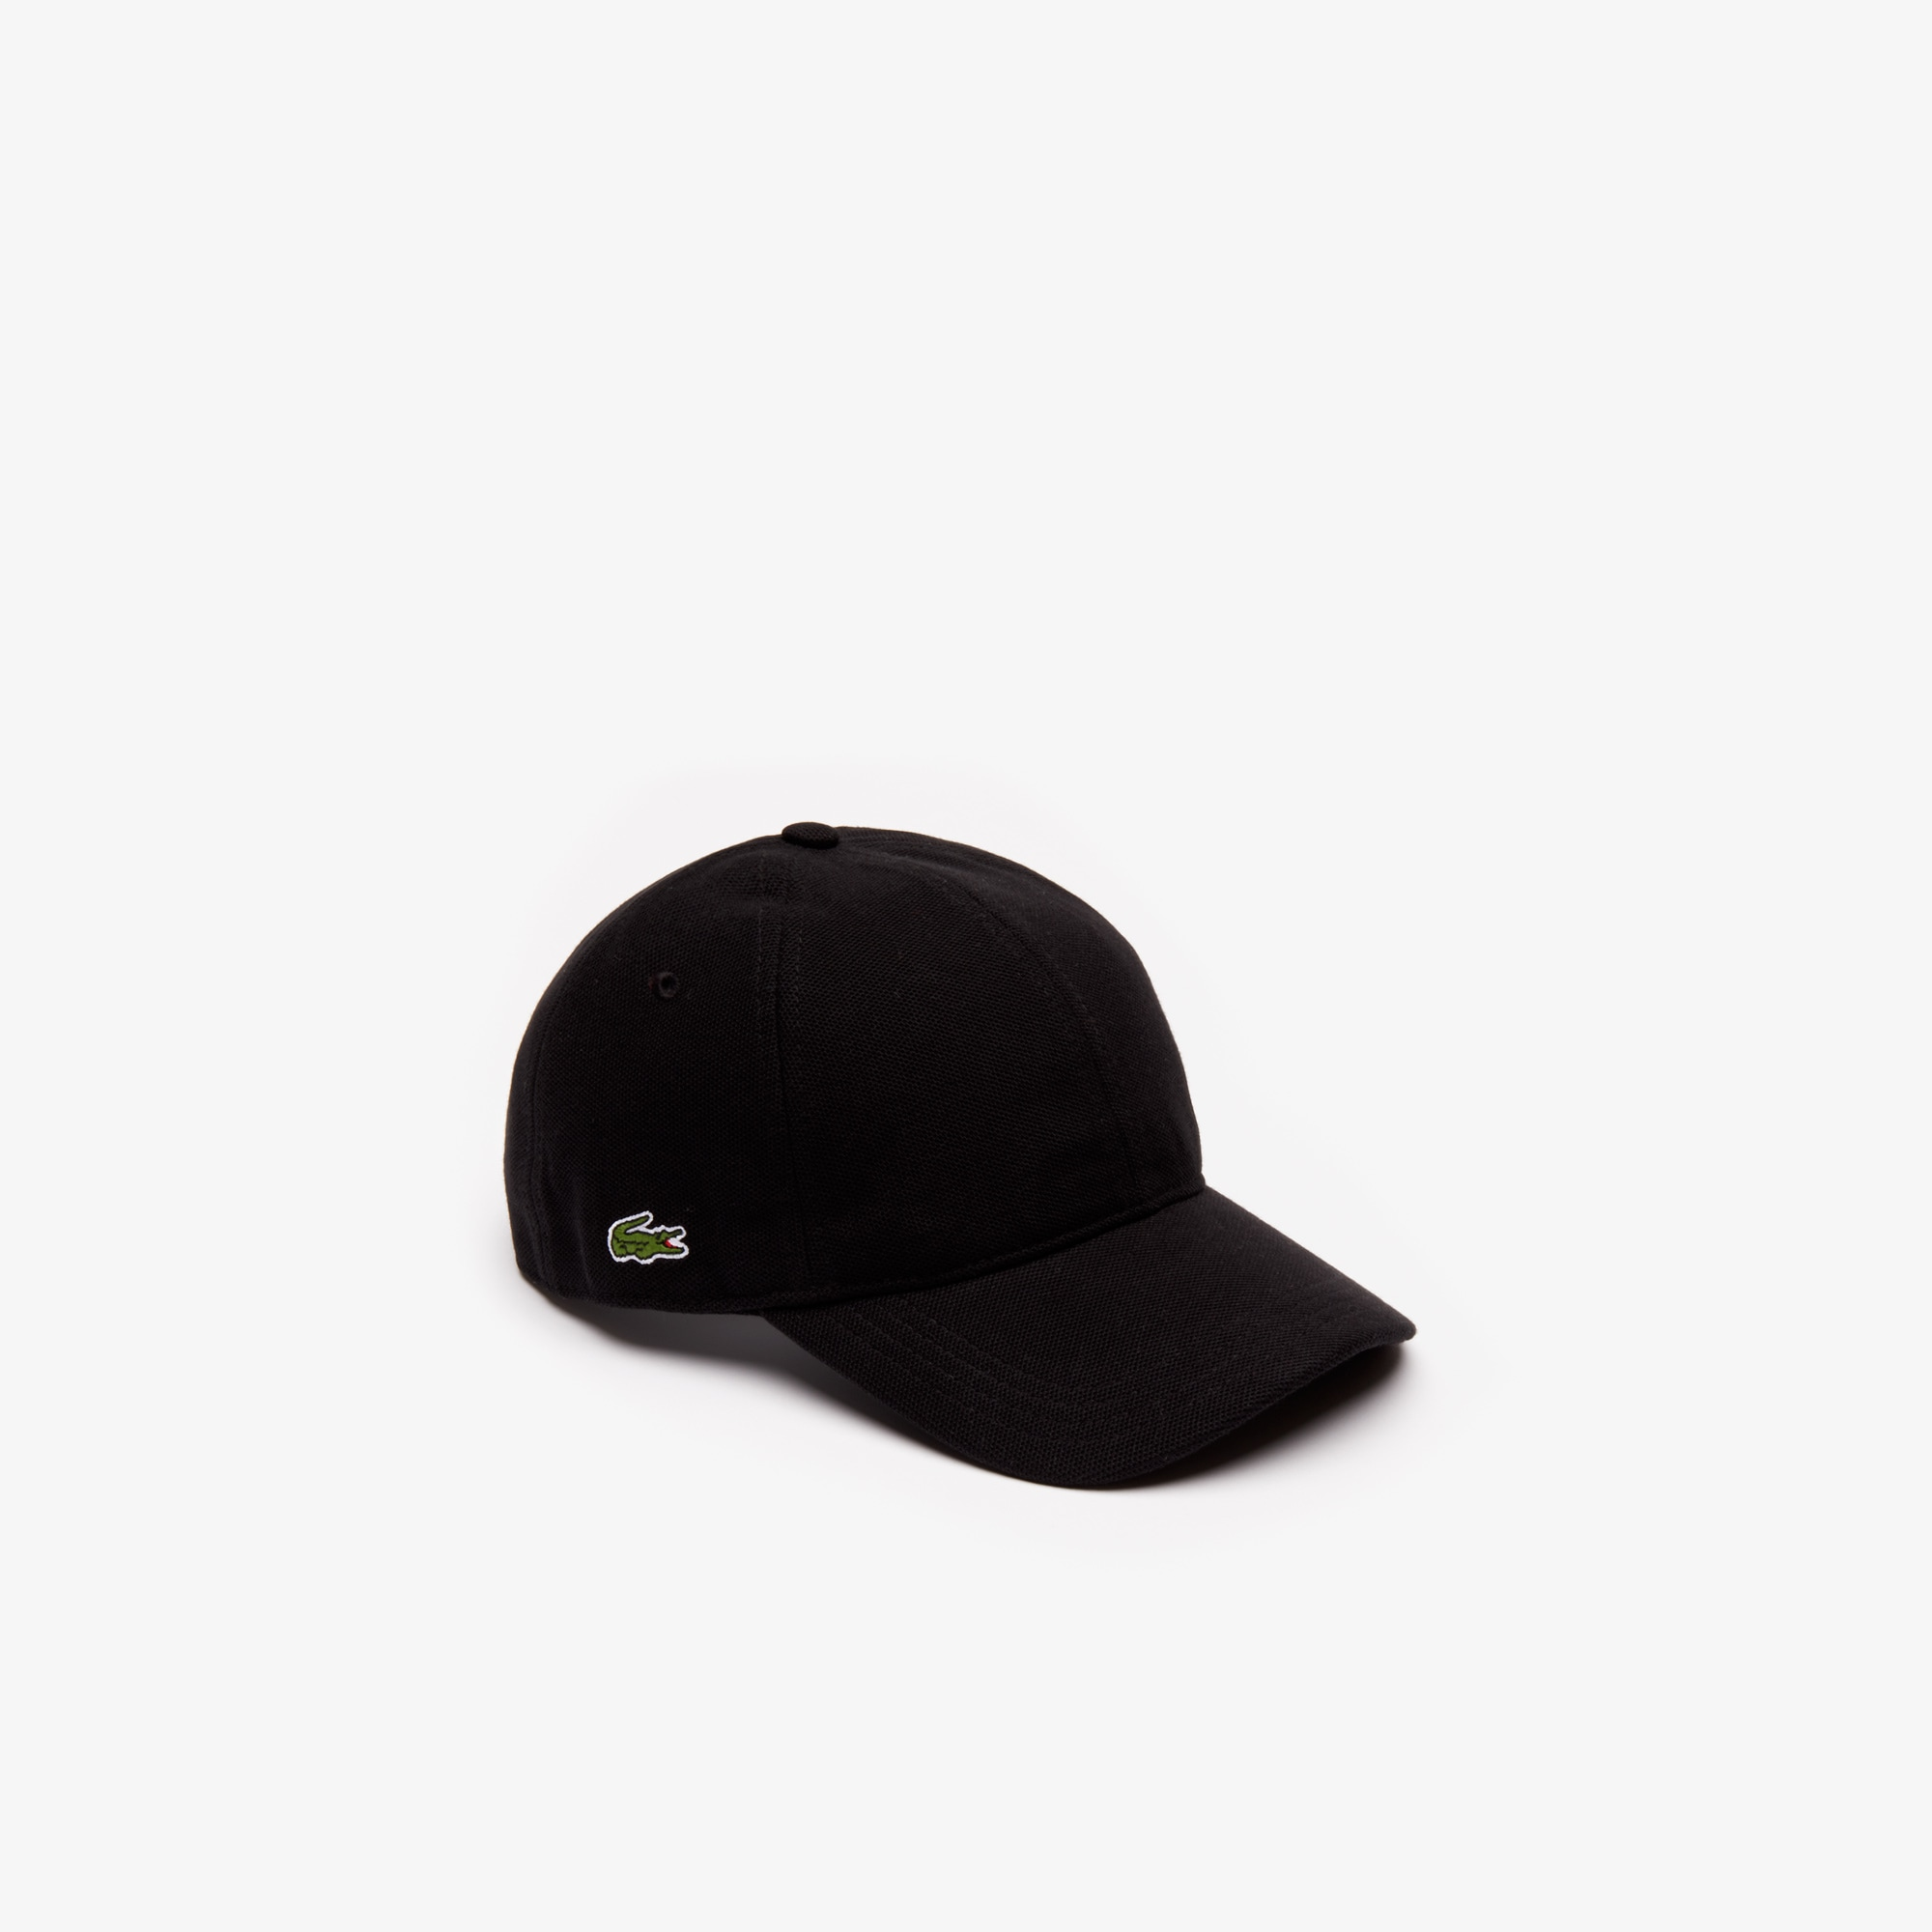 MEN'S COTTON PIQUE CAP